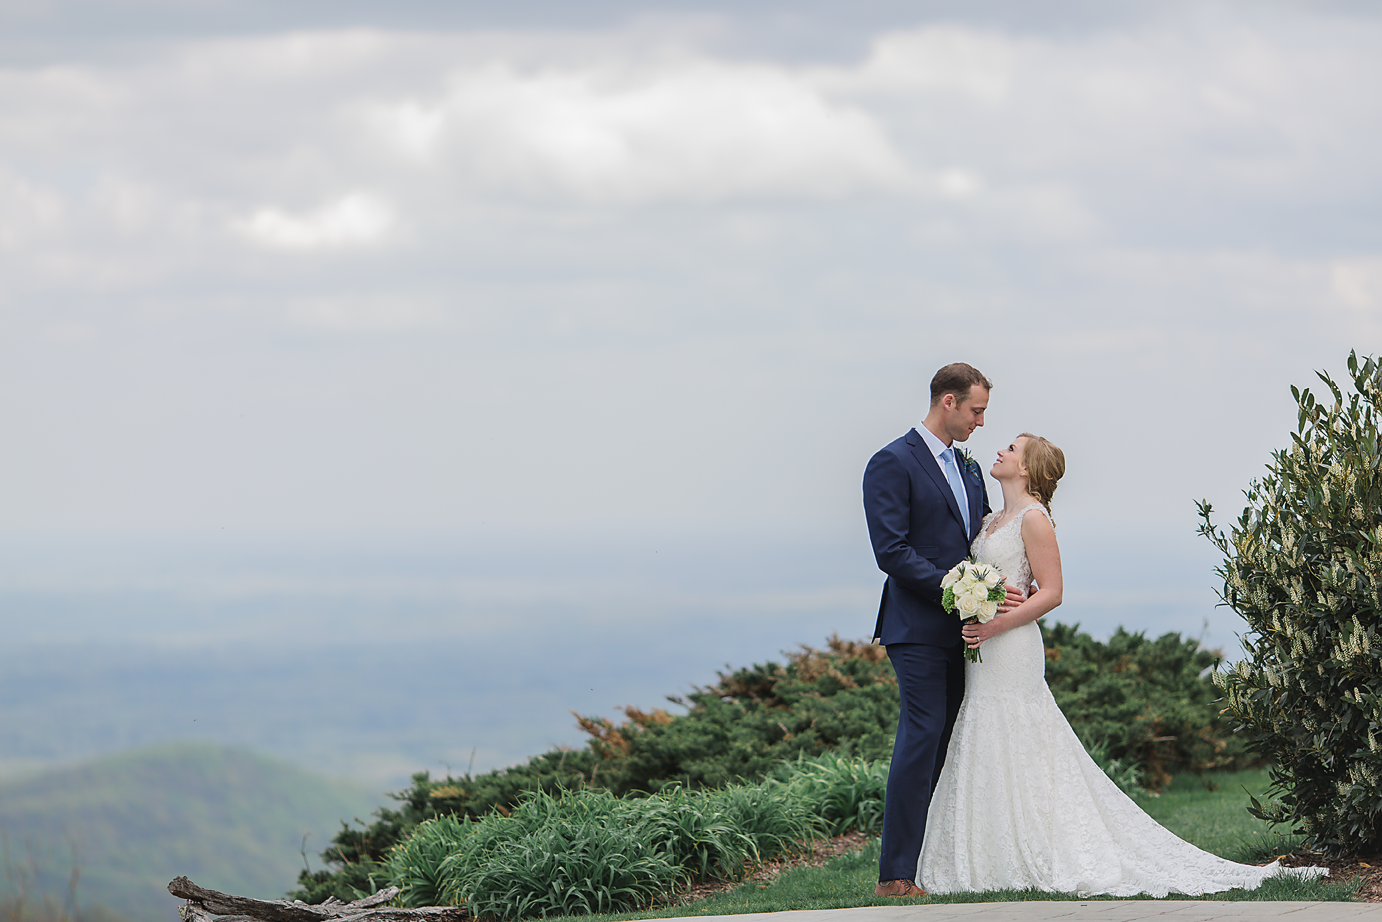 Dallas Wedding Photographer Glassy Mountain Chapel Greenville South Carolina scottish wedding bride and groom romantic mountain top kate marie portraiture.png